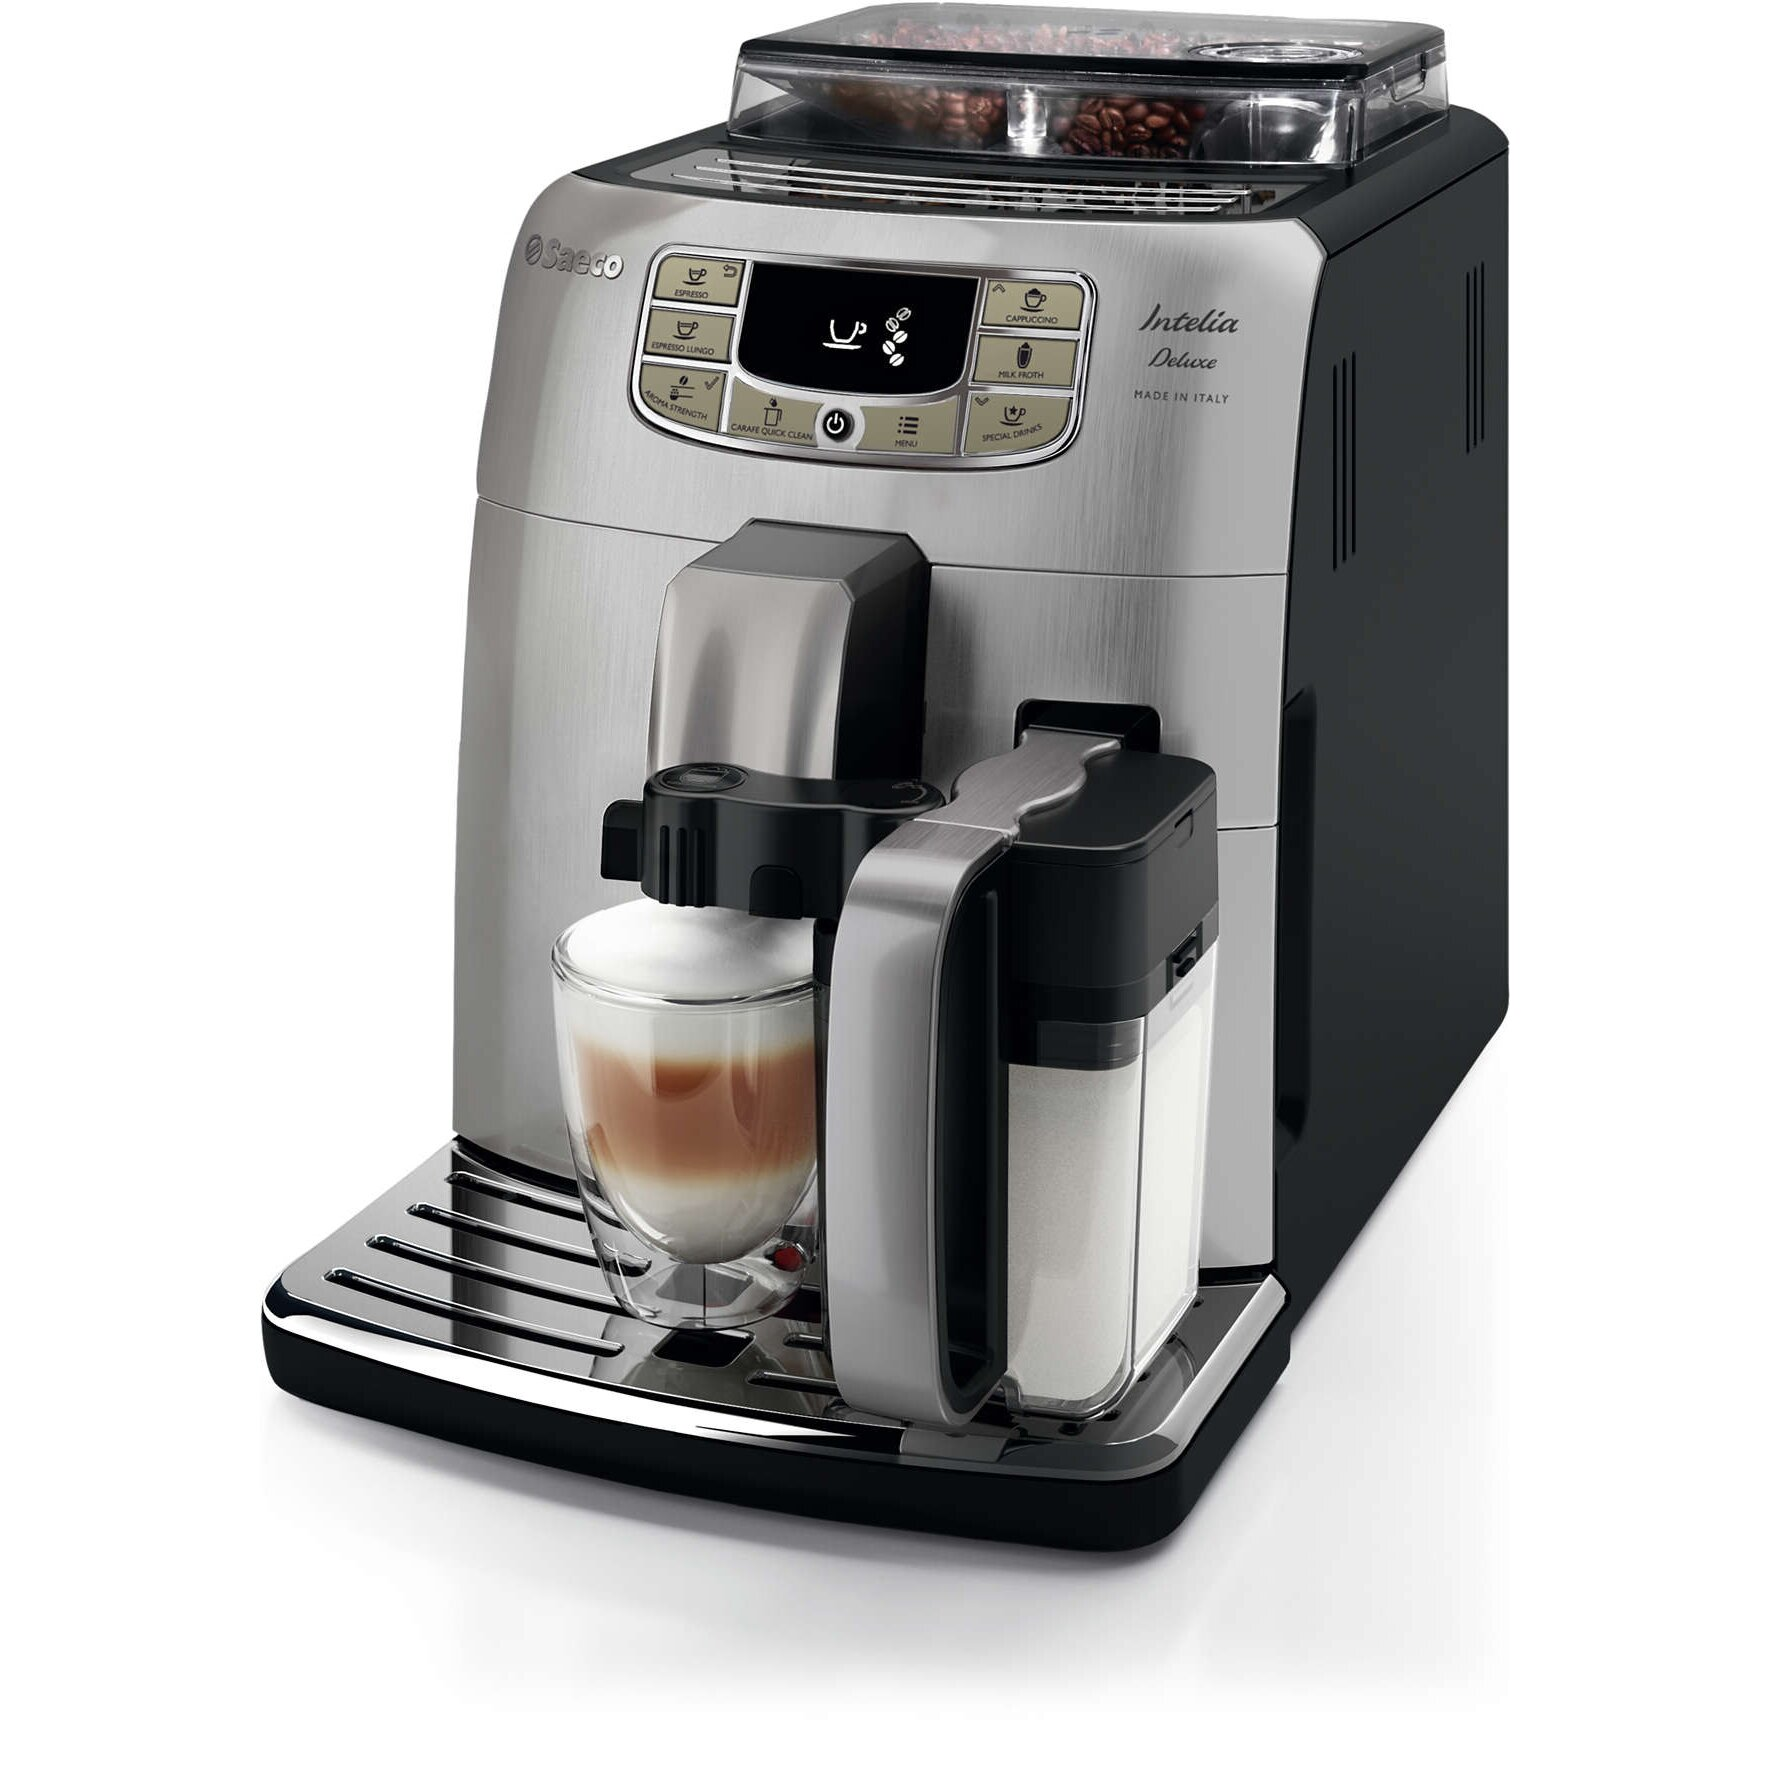 saeco automatic coffee machine review